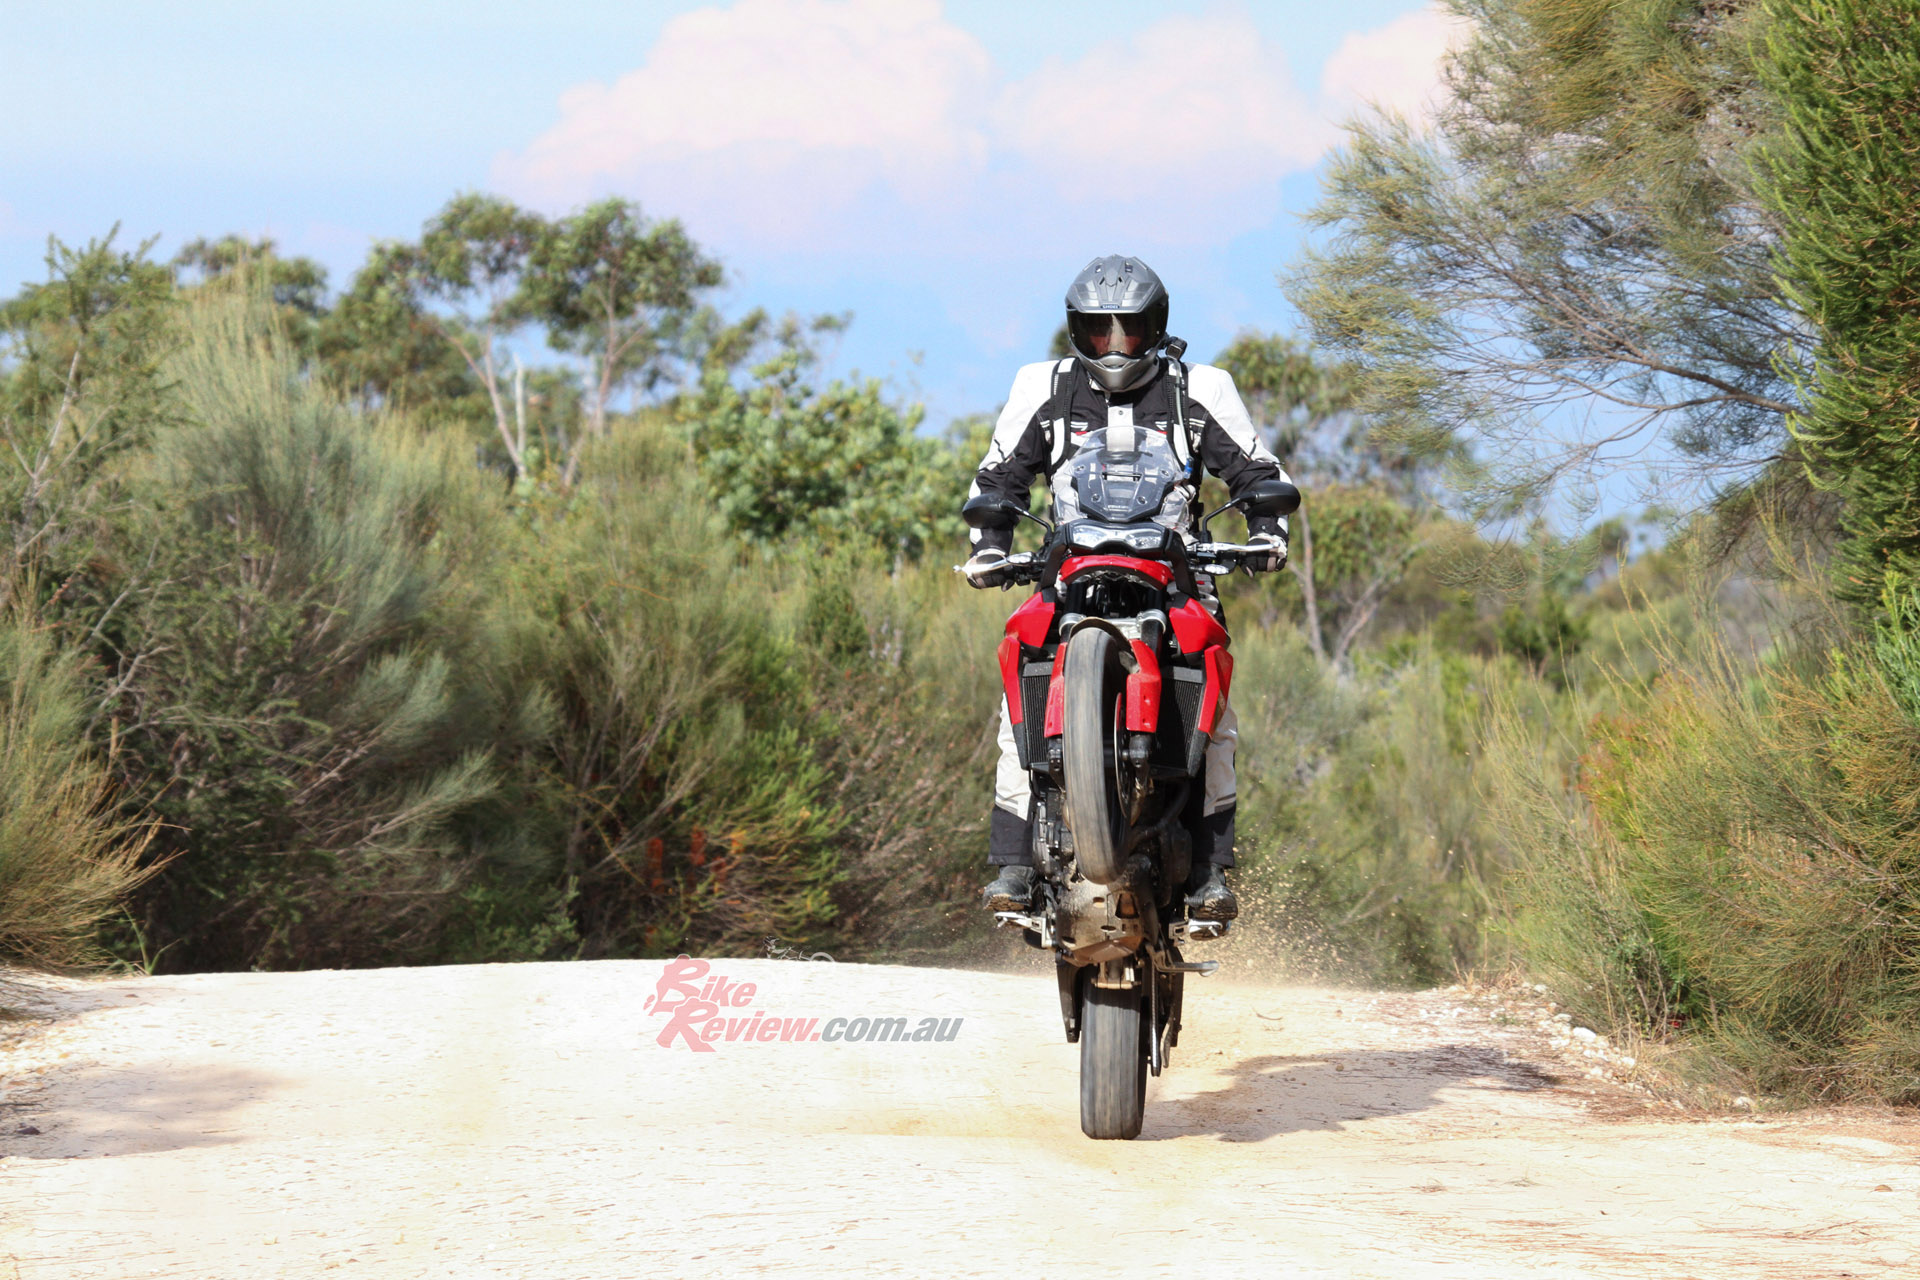 Jeff enjoyed the back-to-basics fun of the 850 Sport and the extra grunt on hand for wheelies!